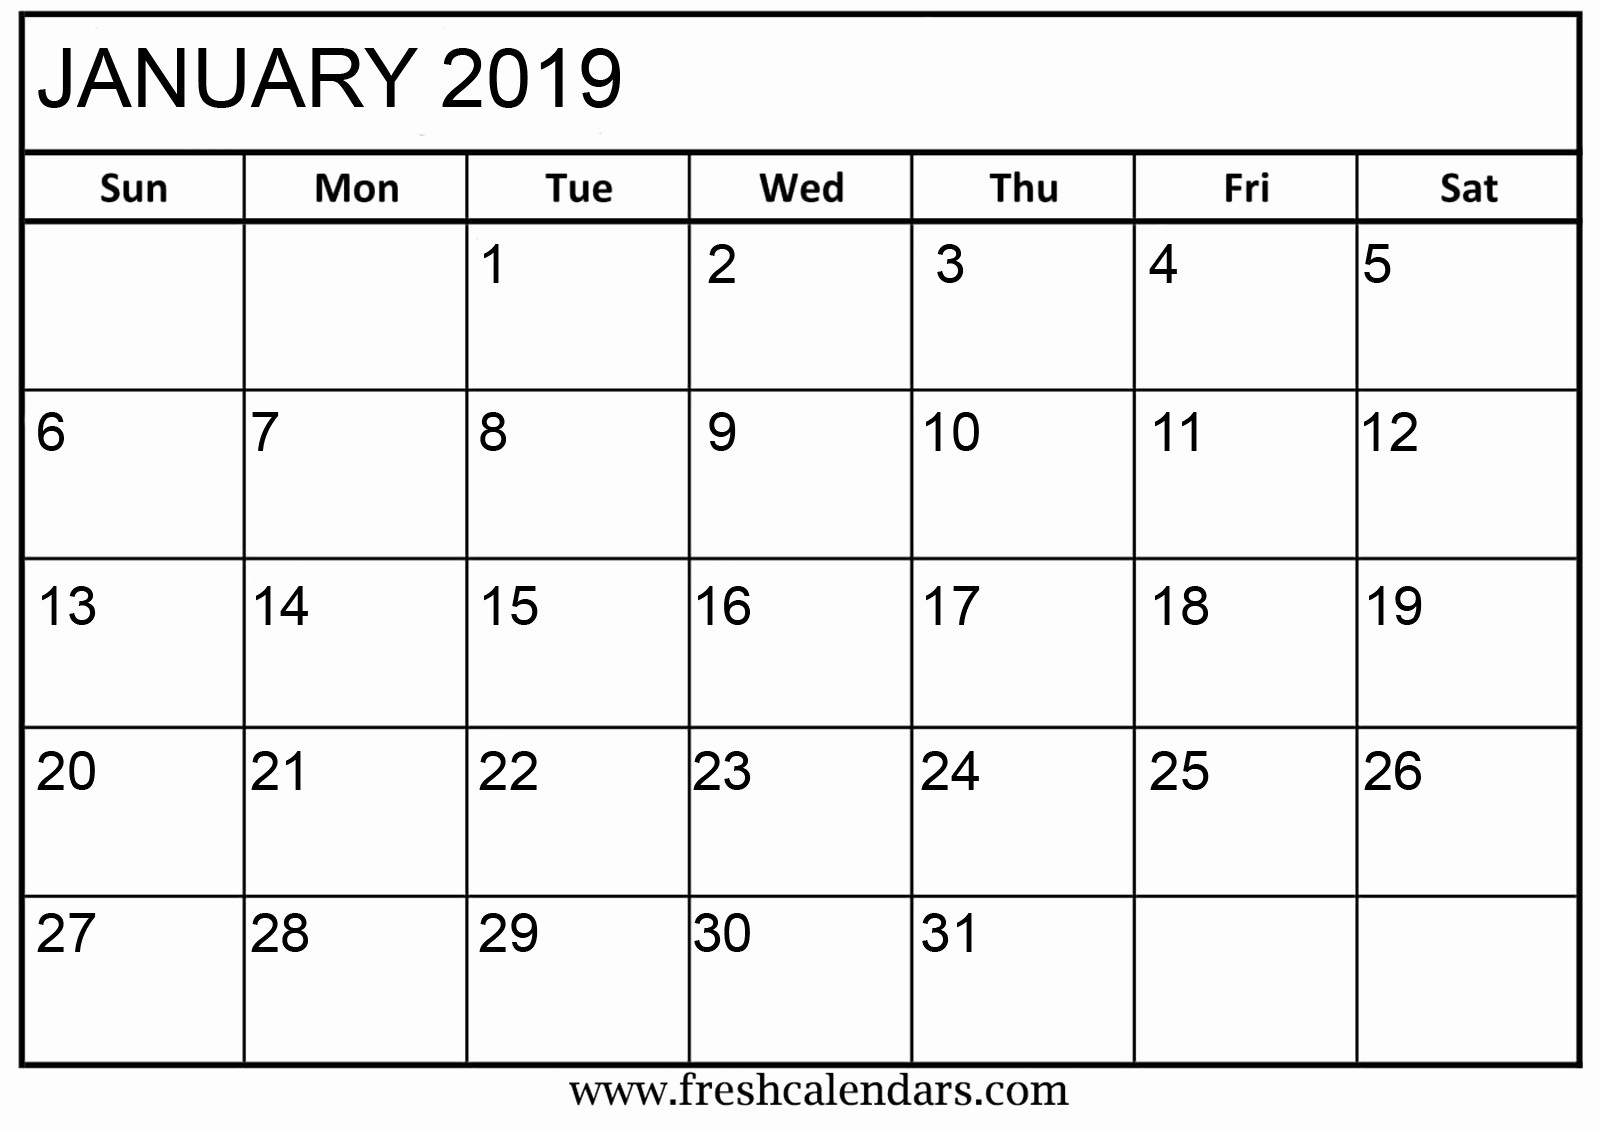 Free Printable Weekly Calendar 2019 Awesome Printable January 2019 Calendar Fresh Calendars